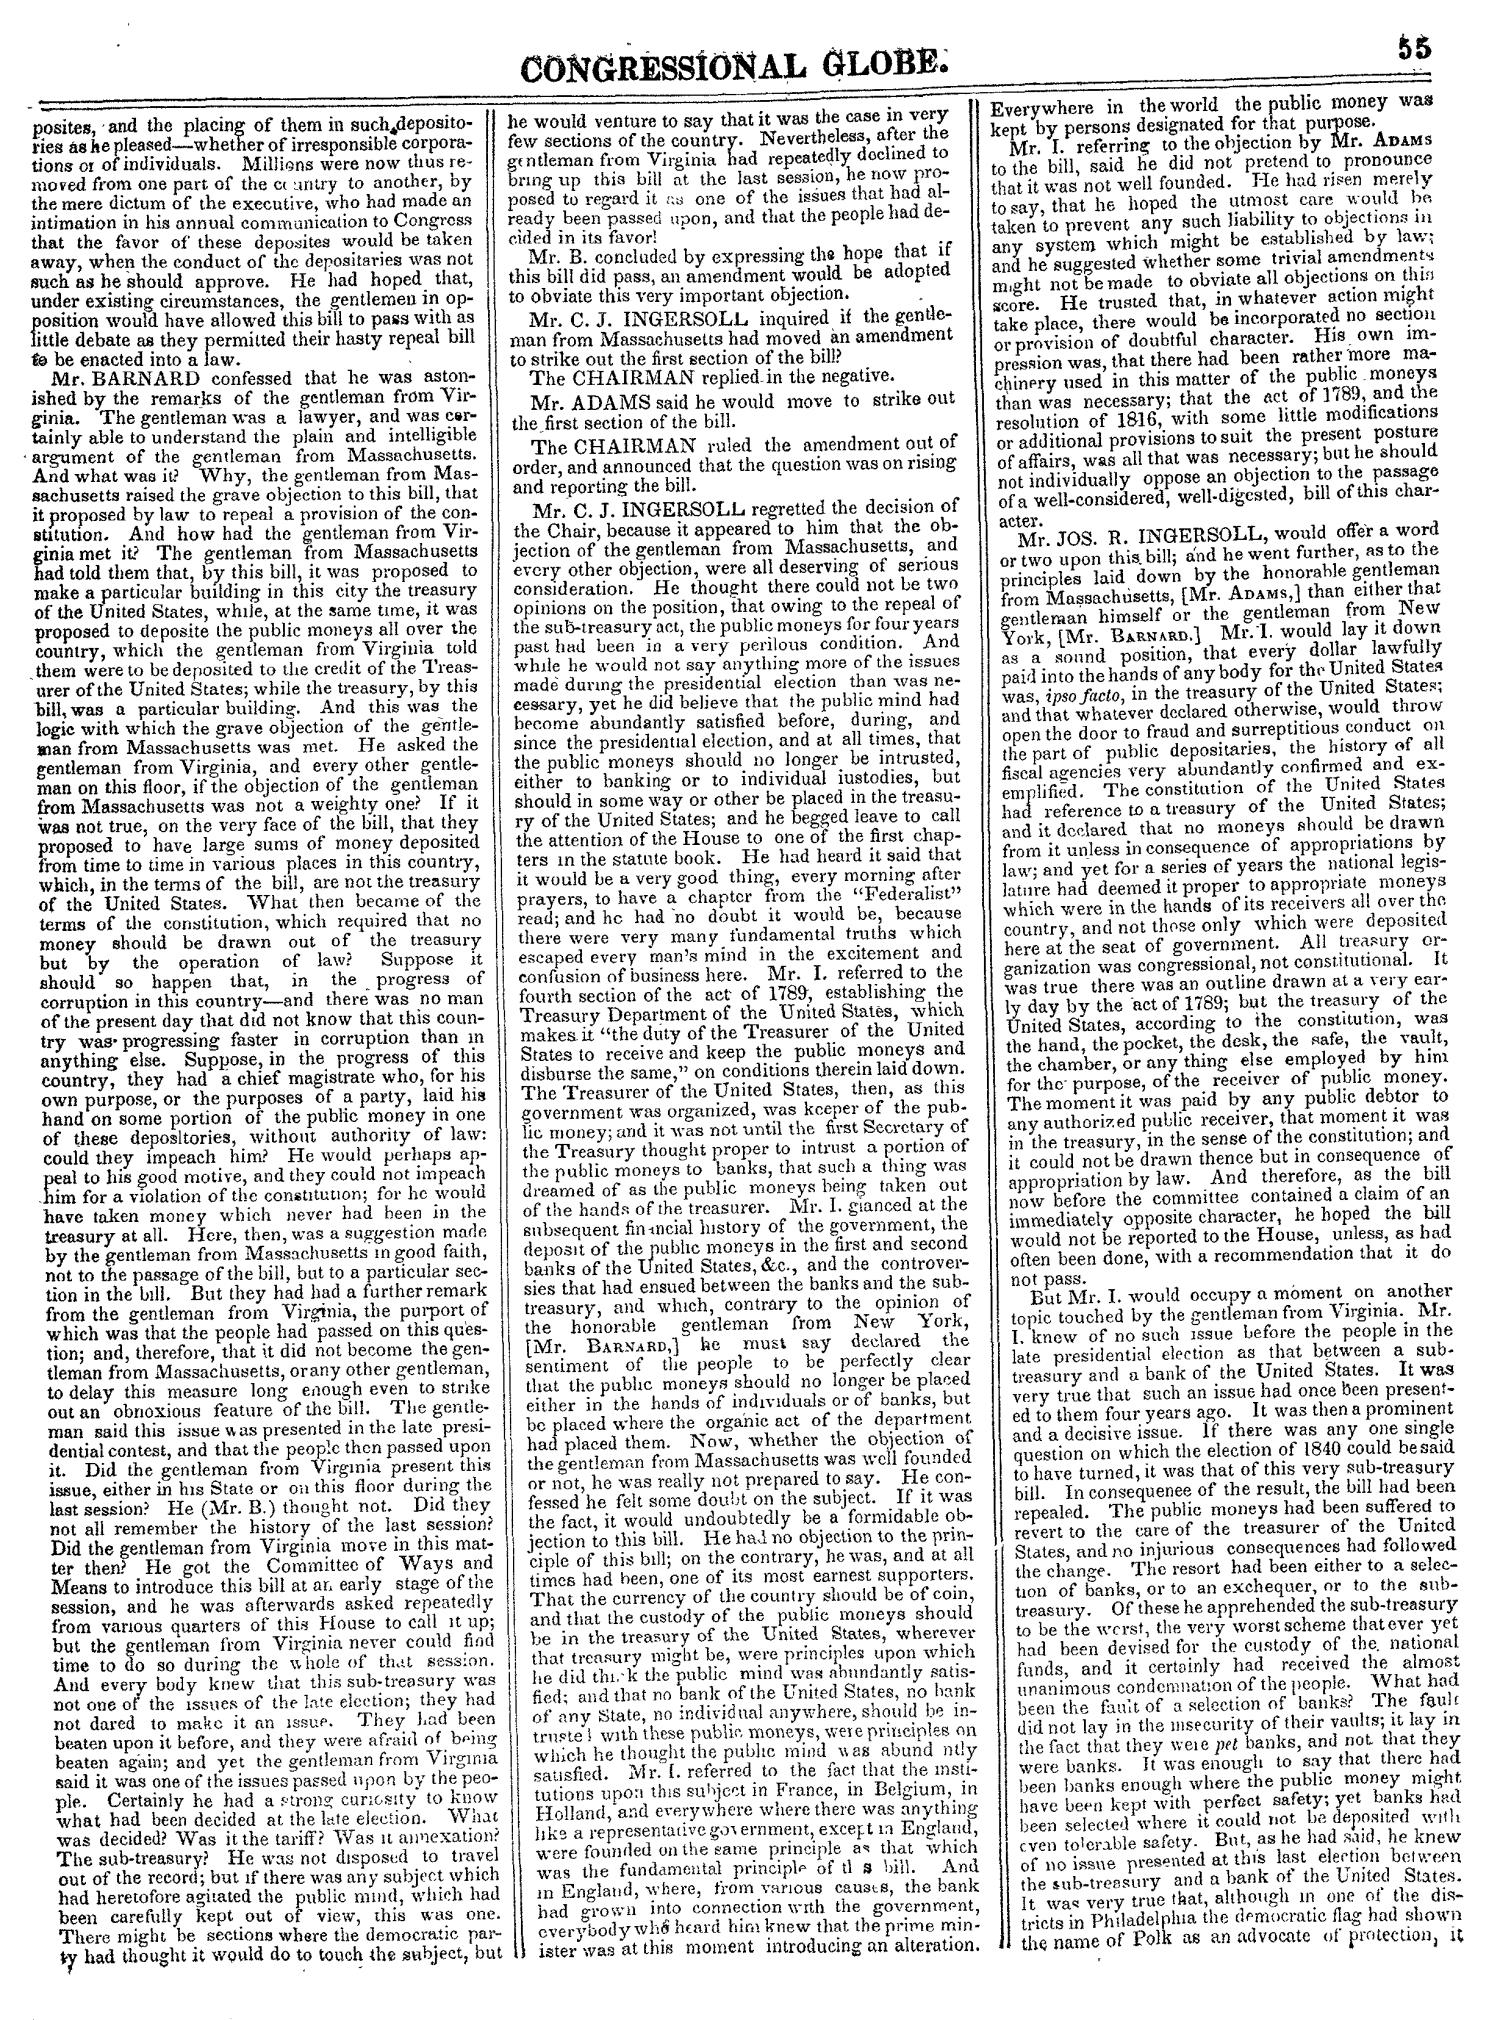 The Congressional Globe, Volume 14: Twenty-Eighth Congress, Second Session                                                                                                      55